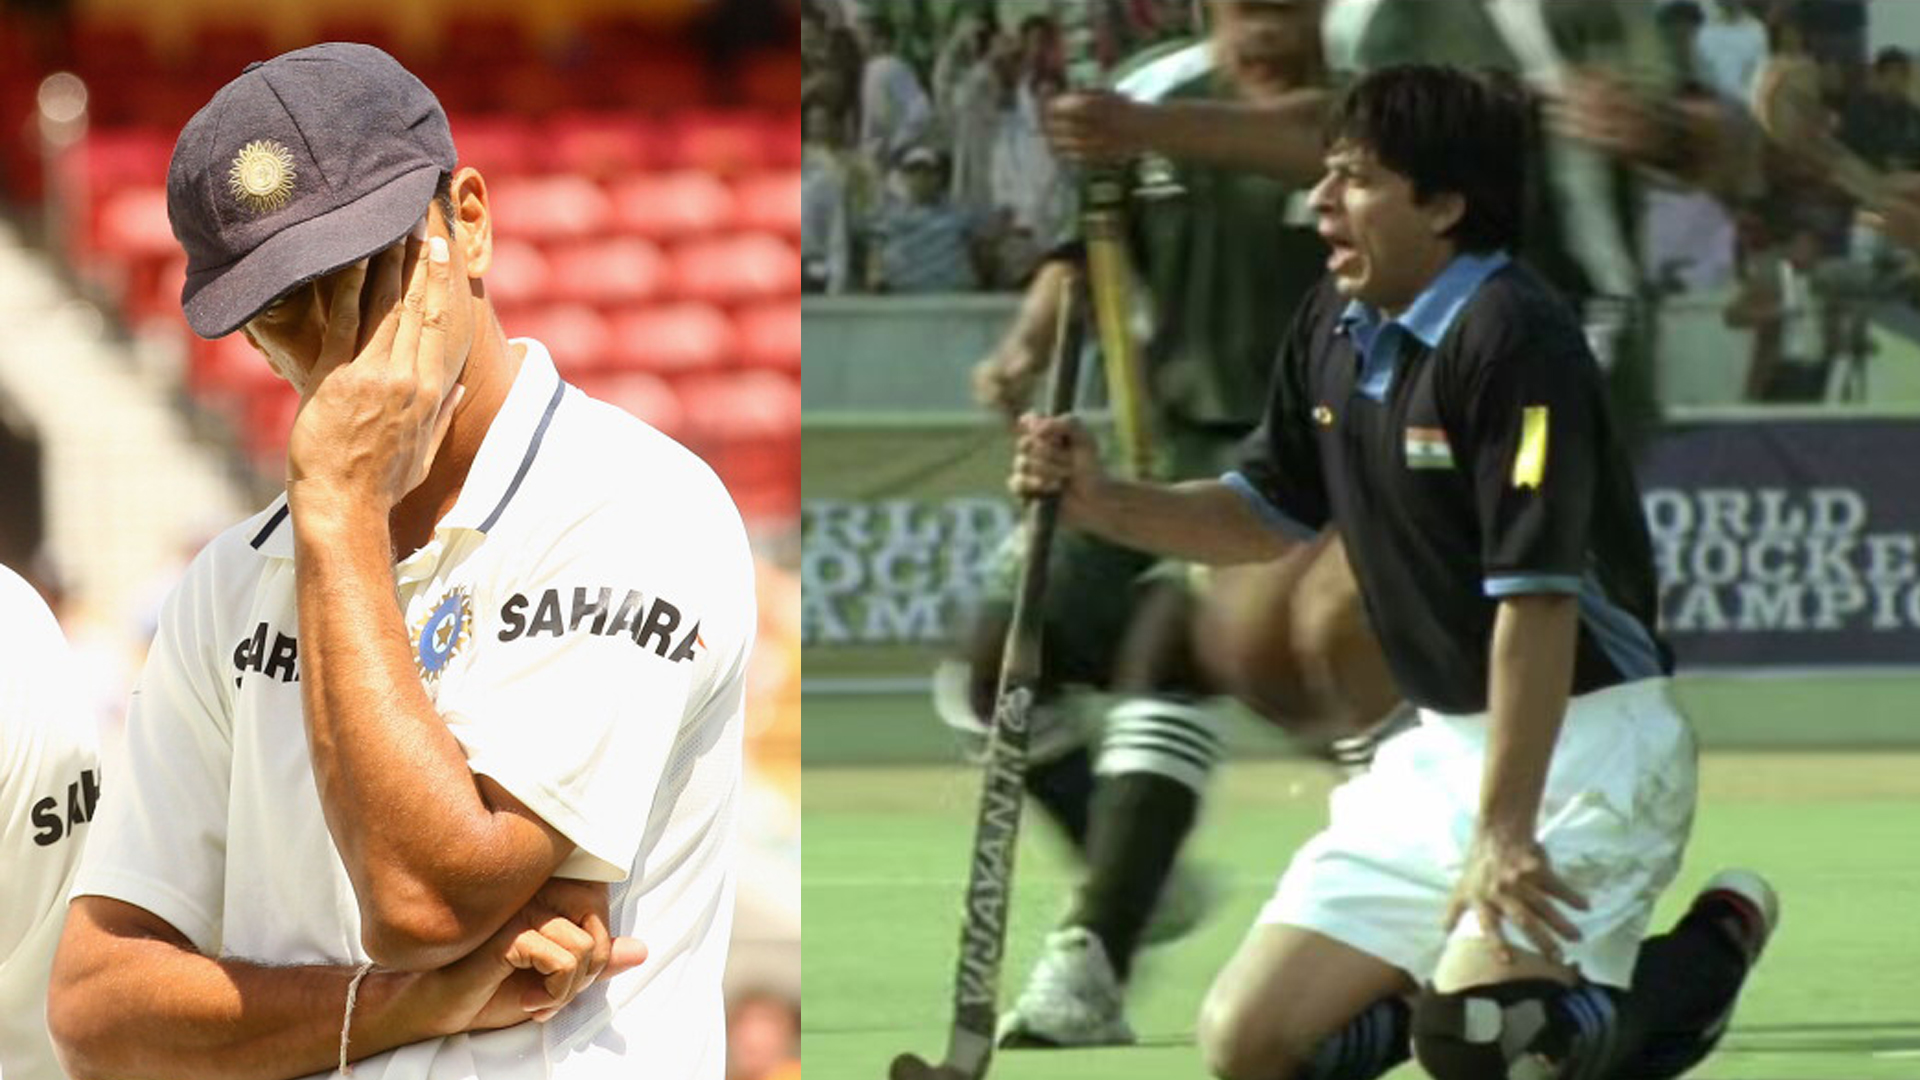 Twitteratis asks | If Sachin deserves Bharat Ratna then why not Rahul Dravid?